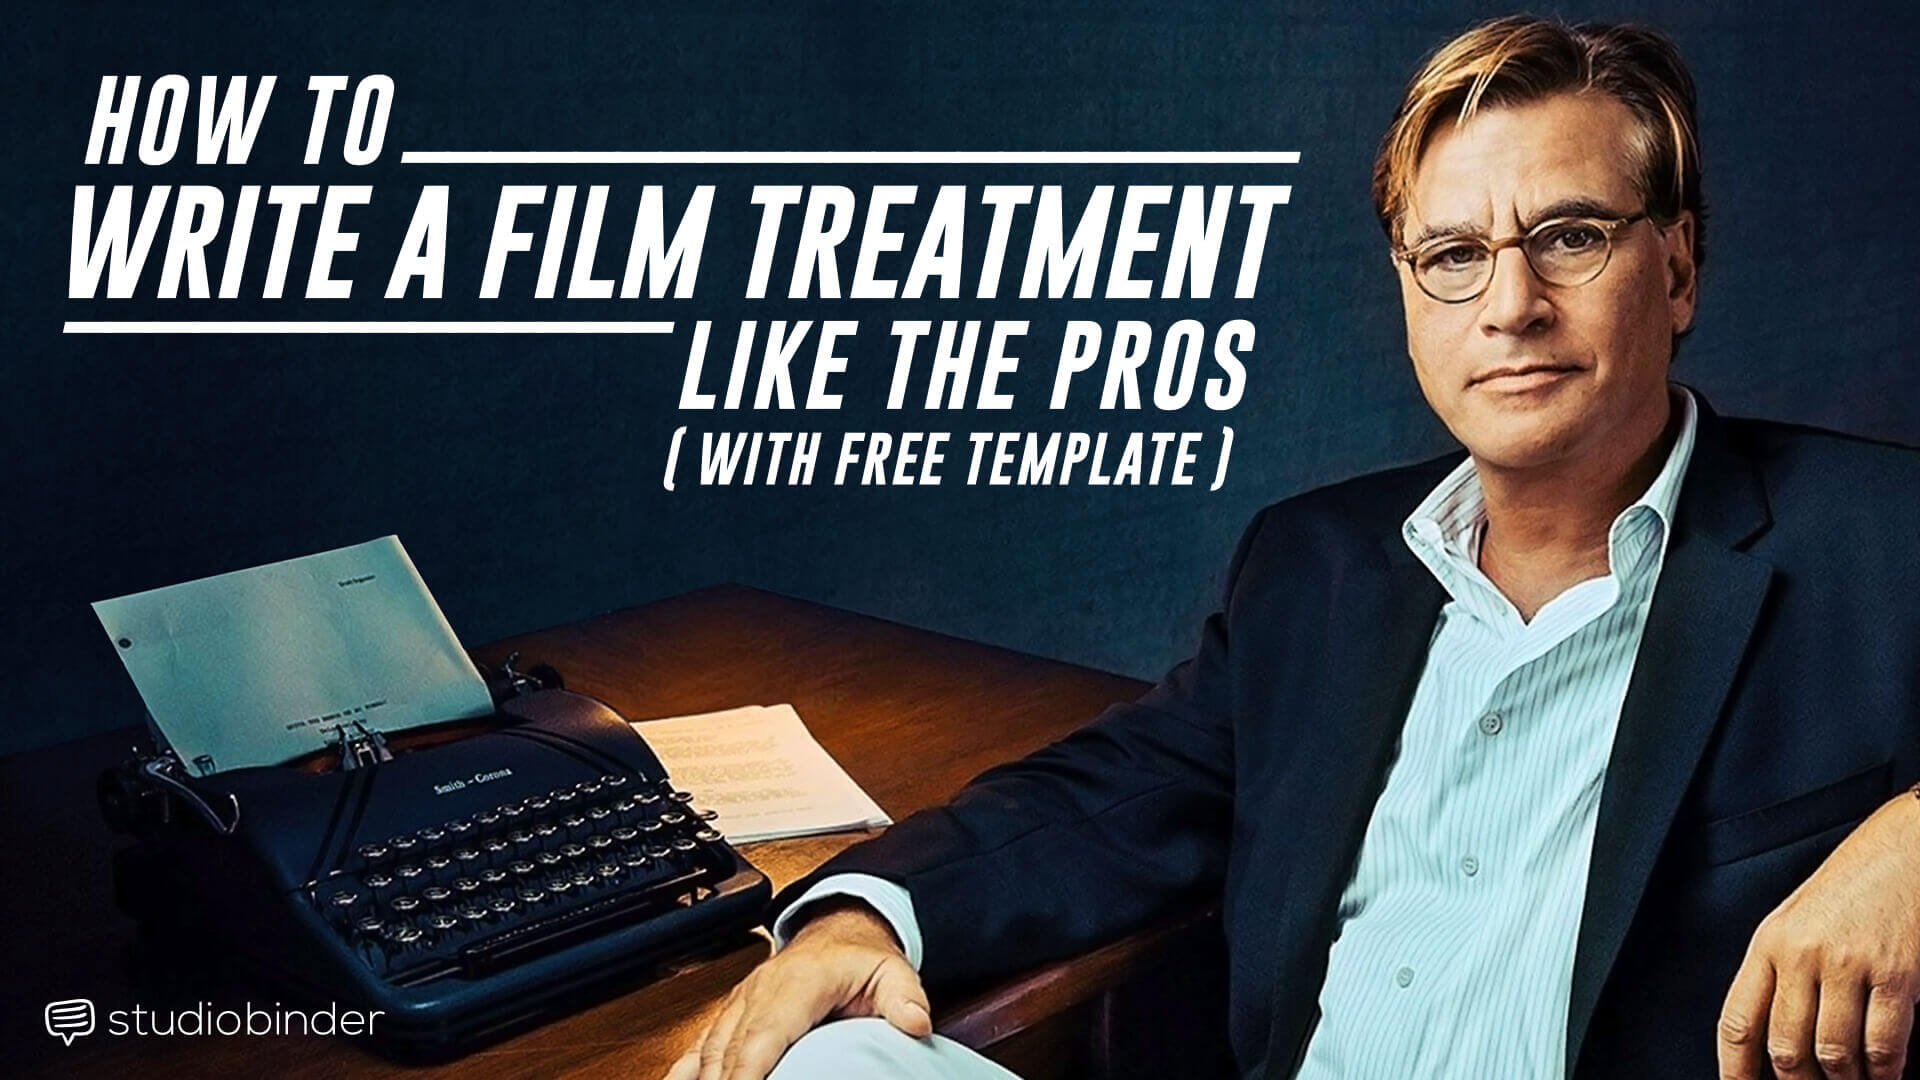 How to Write a Film Treatemnt Like the Pros - Social Media - StudioBinder